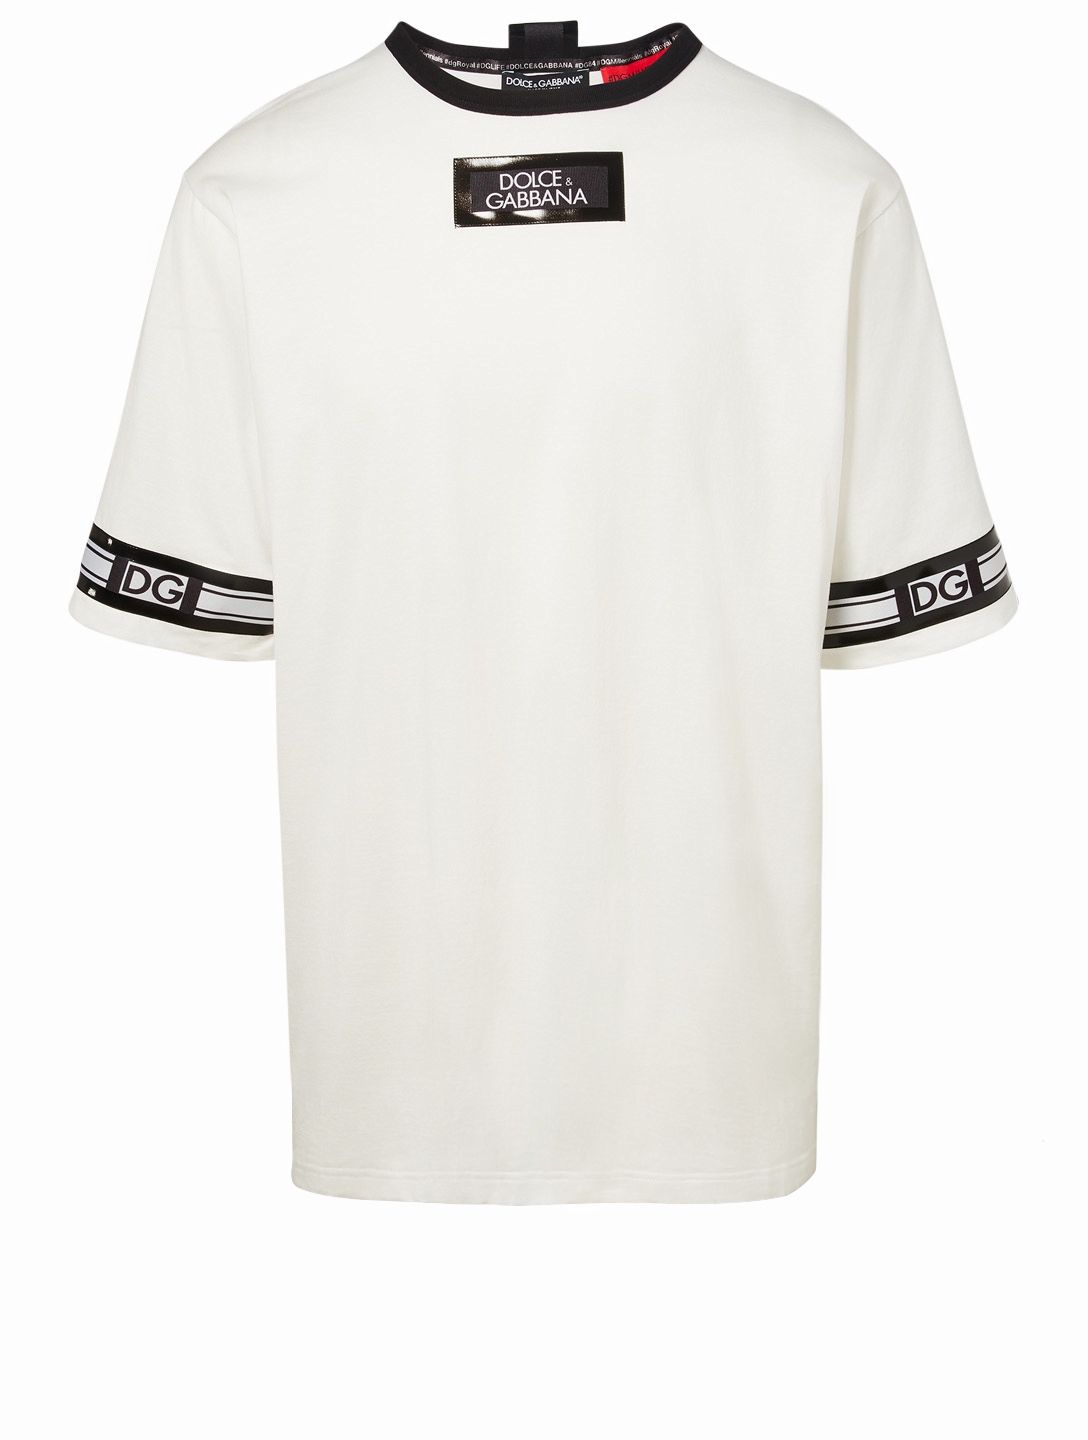 DOLCE & GABBANA Logo Band T-Shirt Men's White